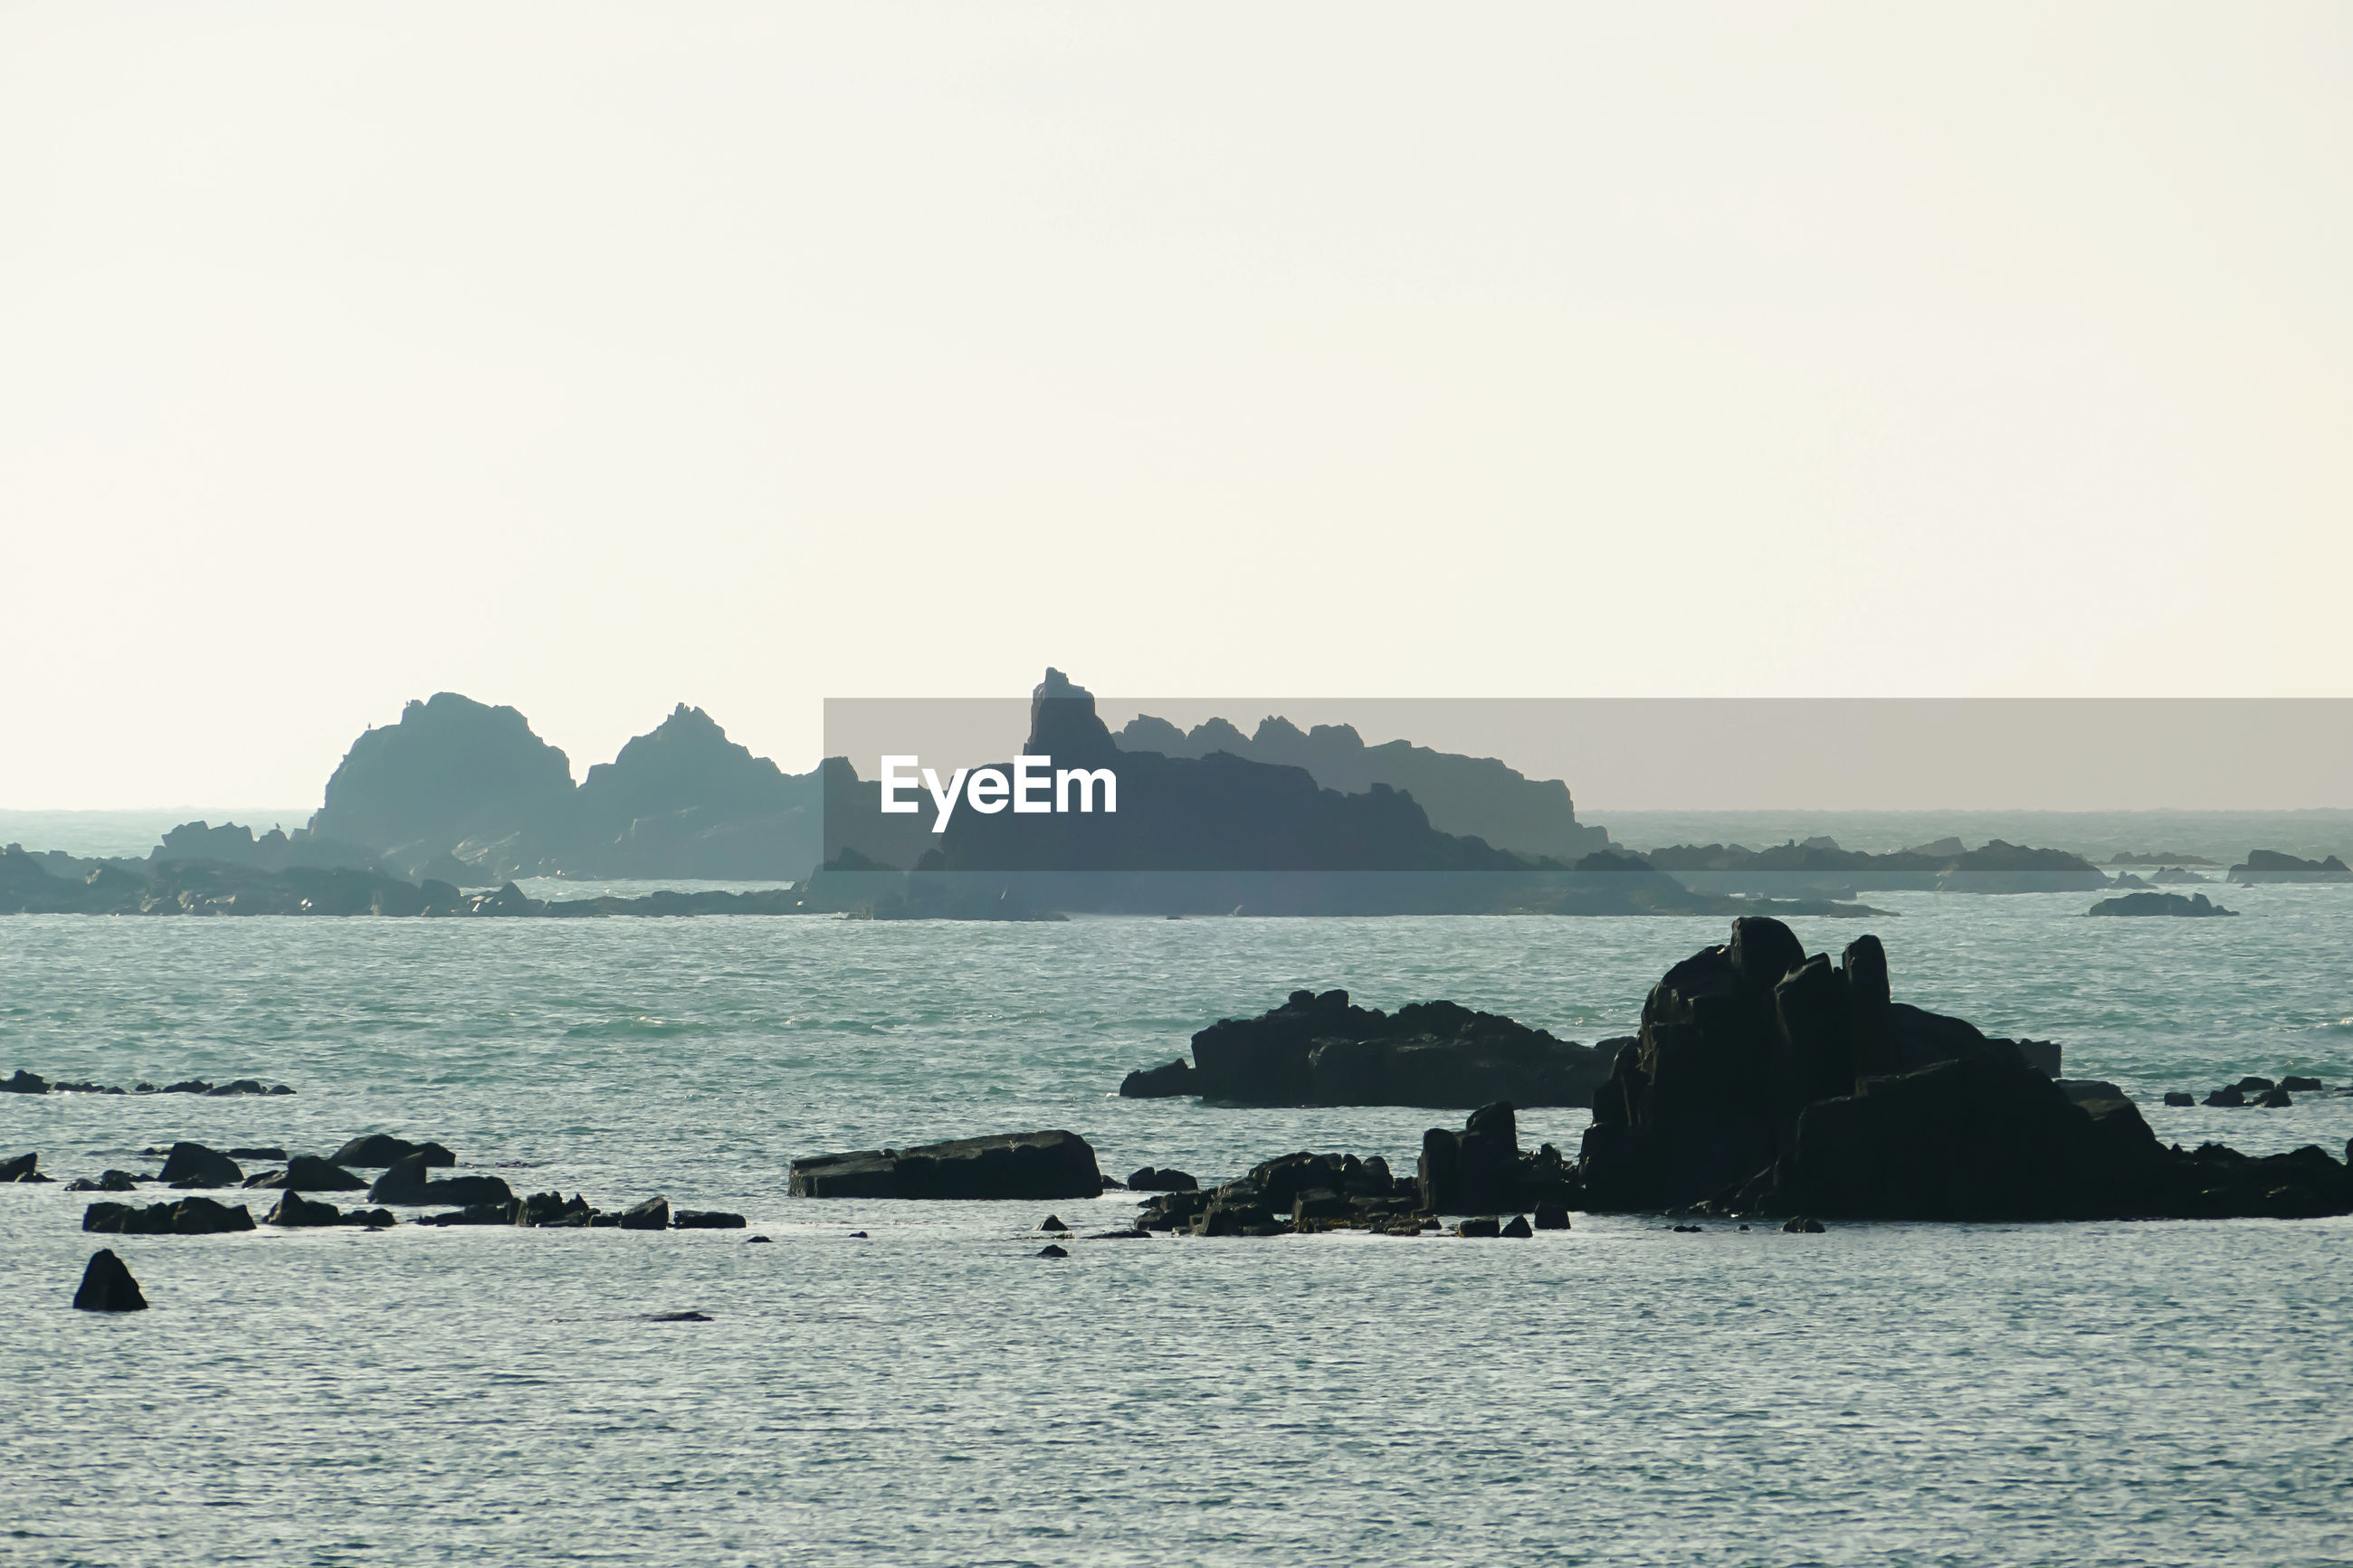 SCENIC VIEW OF ROCKS ON SEA AGAINST CLEAR SKY